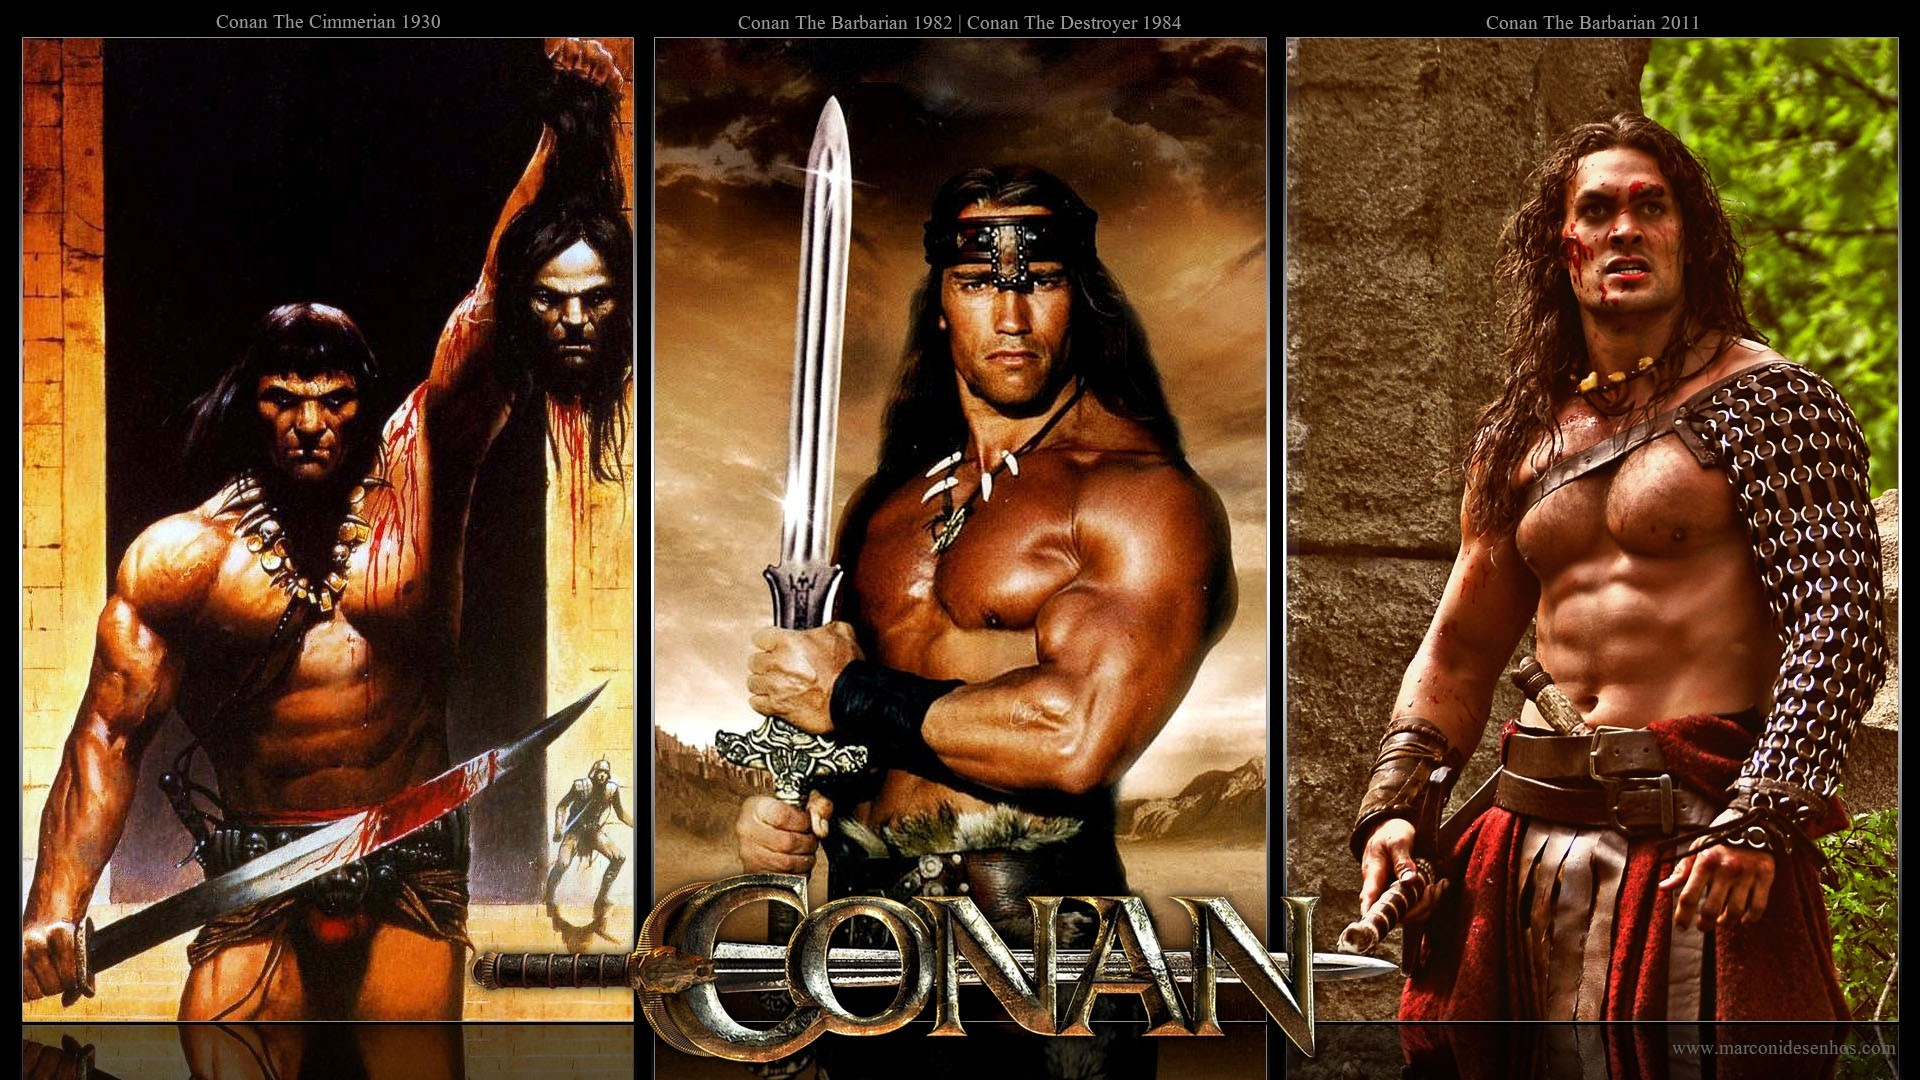 Conan the Barbarian Movie Wallpapers WallpapersIn4knet 1920x1080